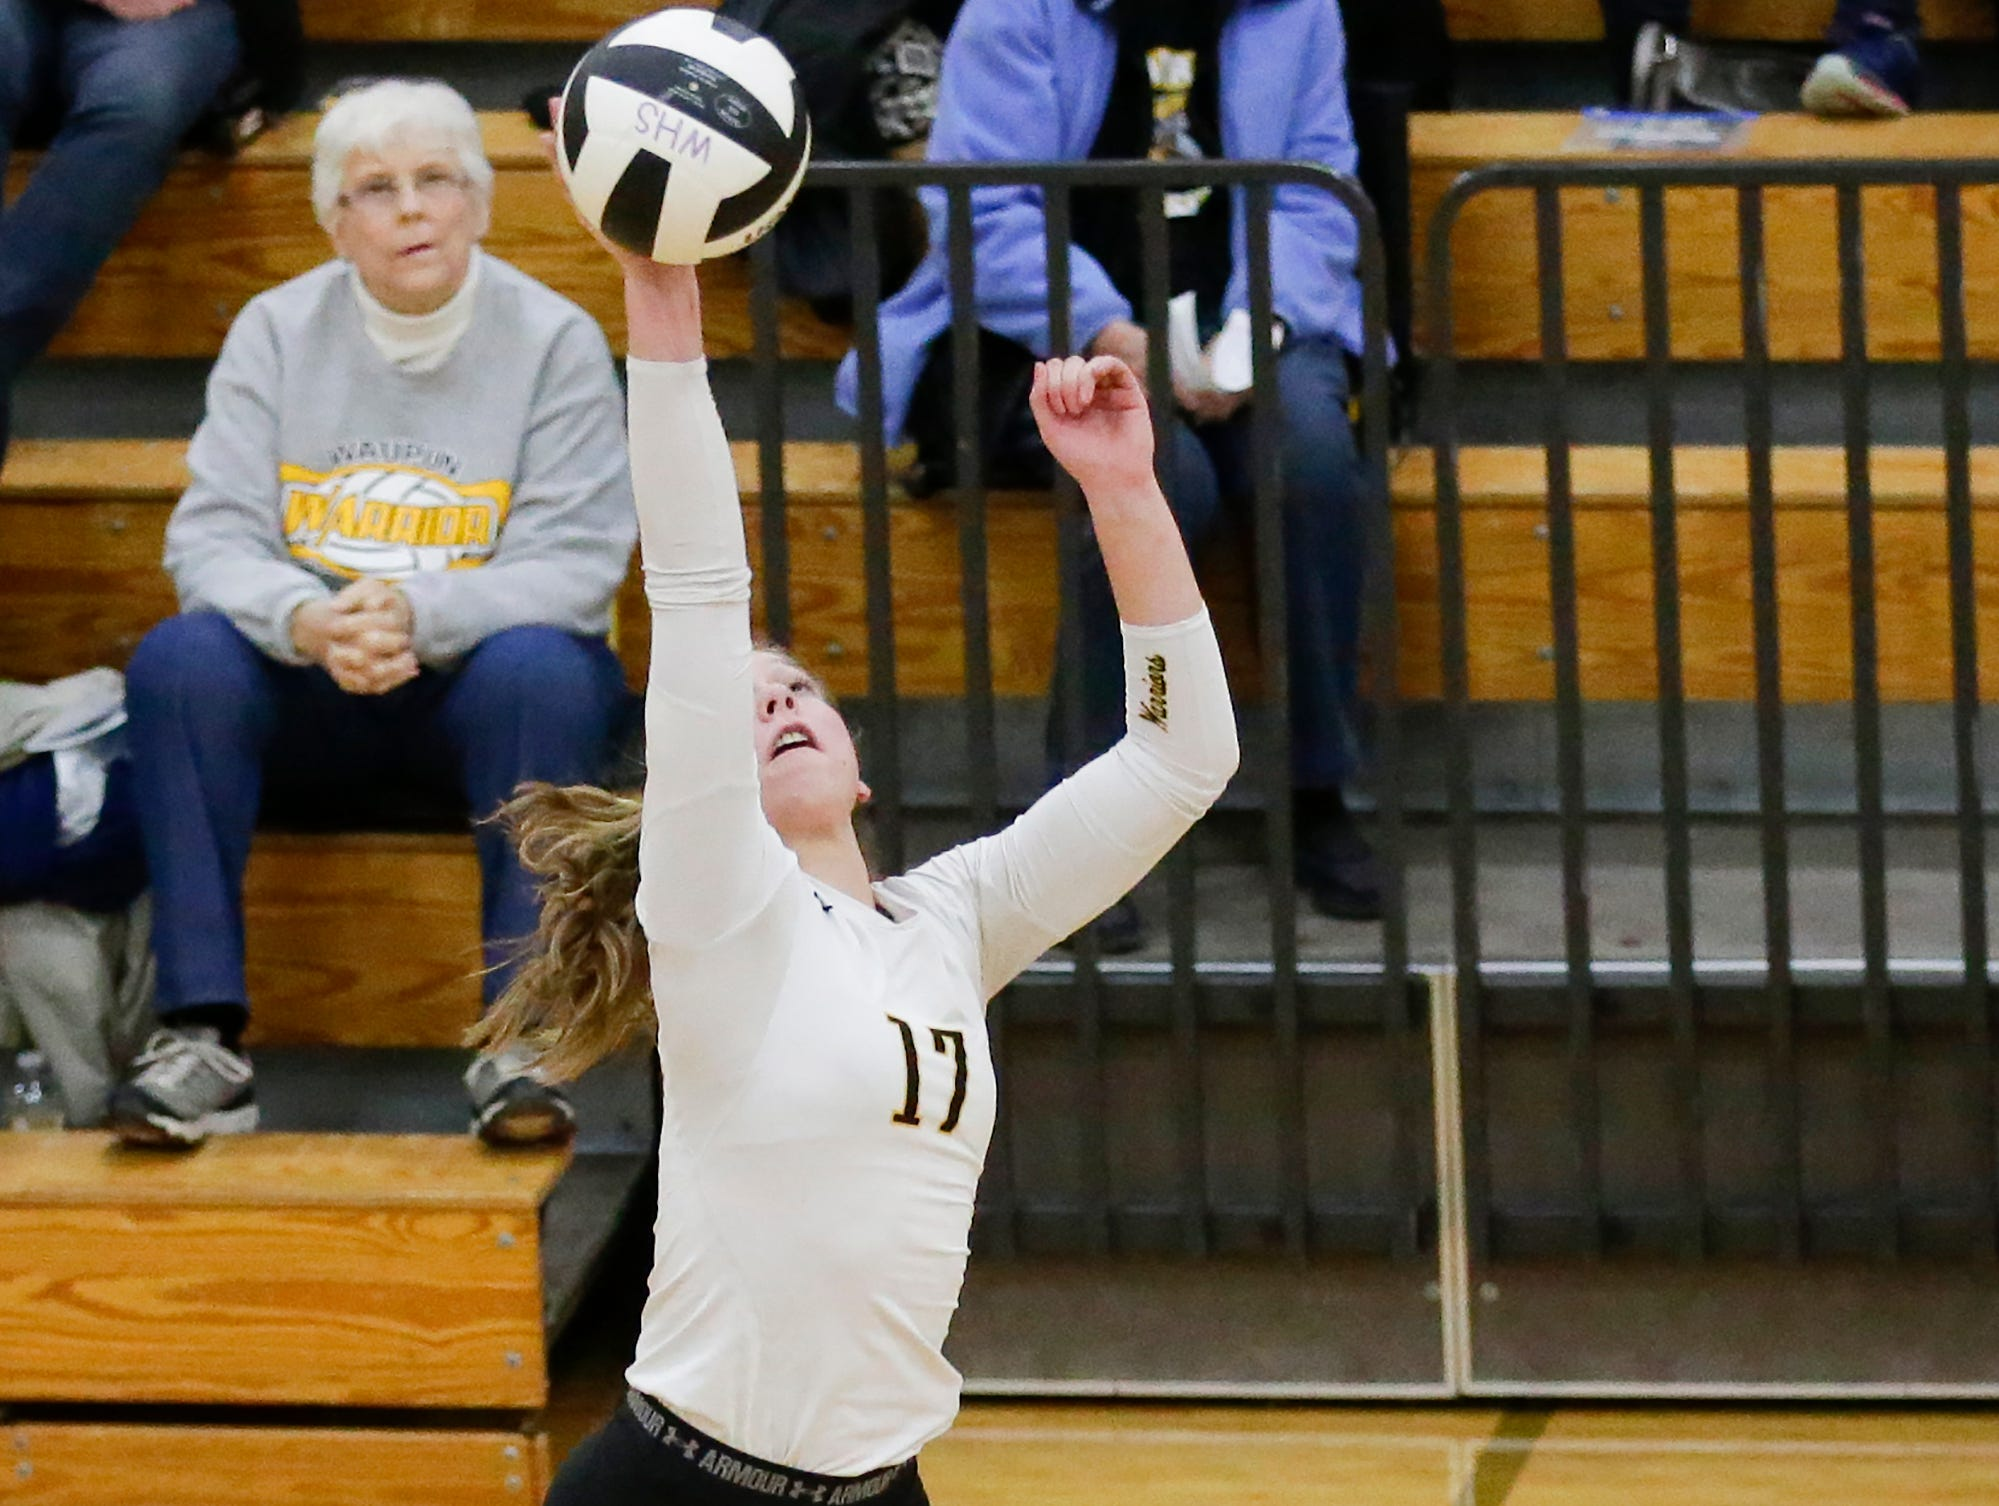 Waupun High School volleyball's Emily Rens hits the ball against Berlin High School during their WIAA regional quarter-final playoff game Tuesday, Oct. 16, 2018, in Waupun.